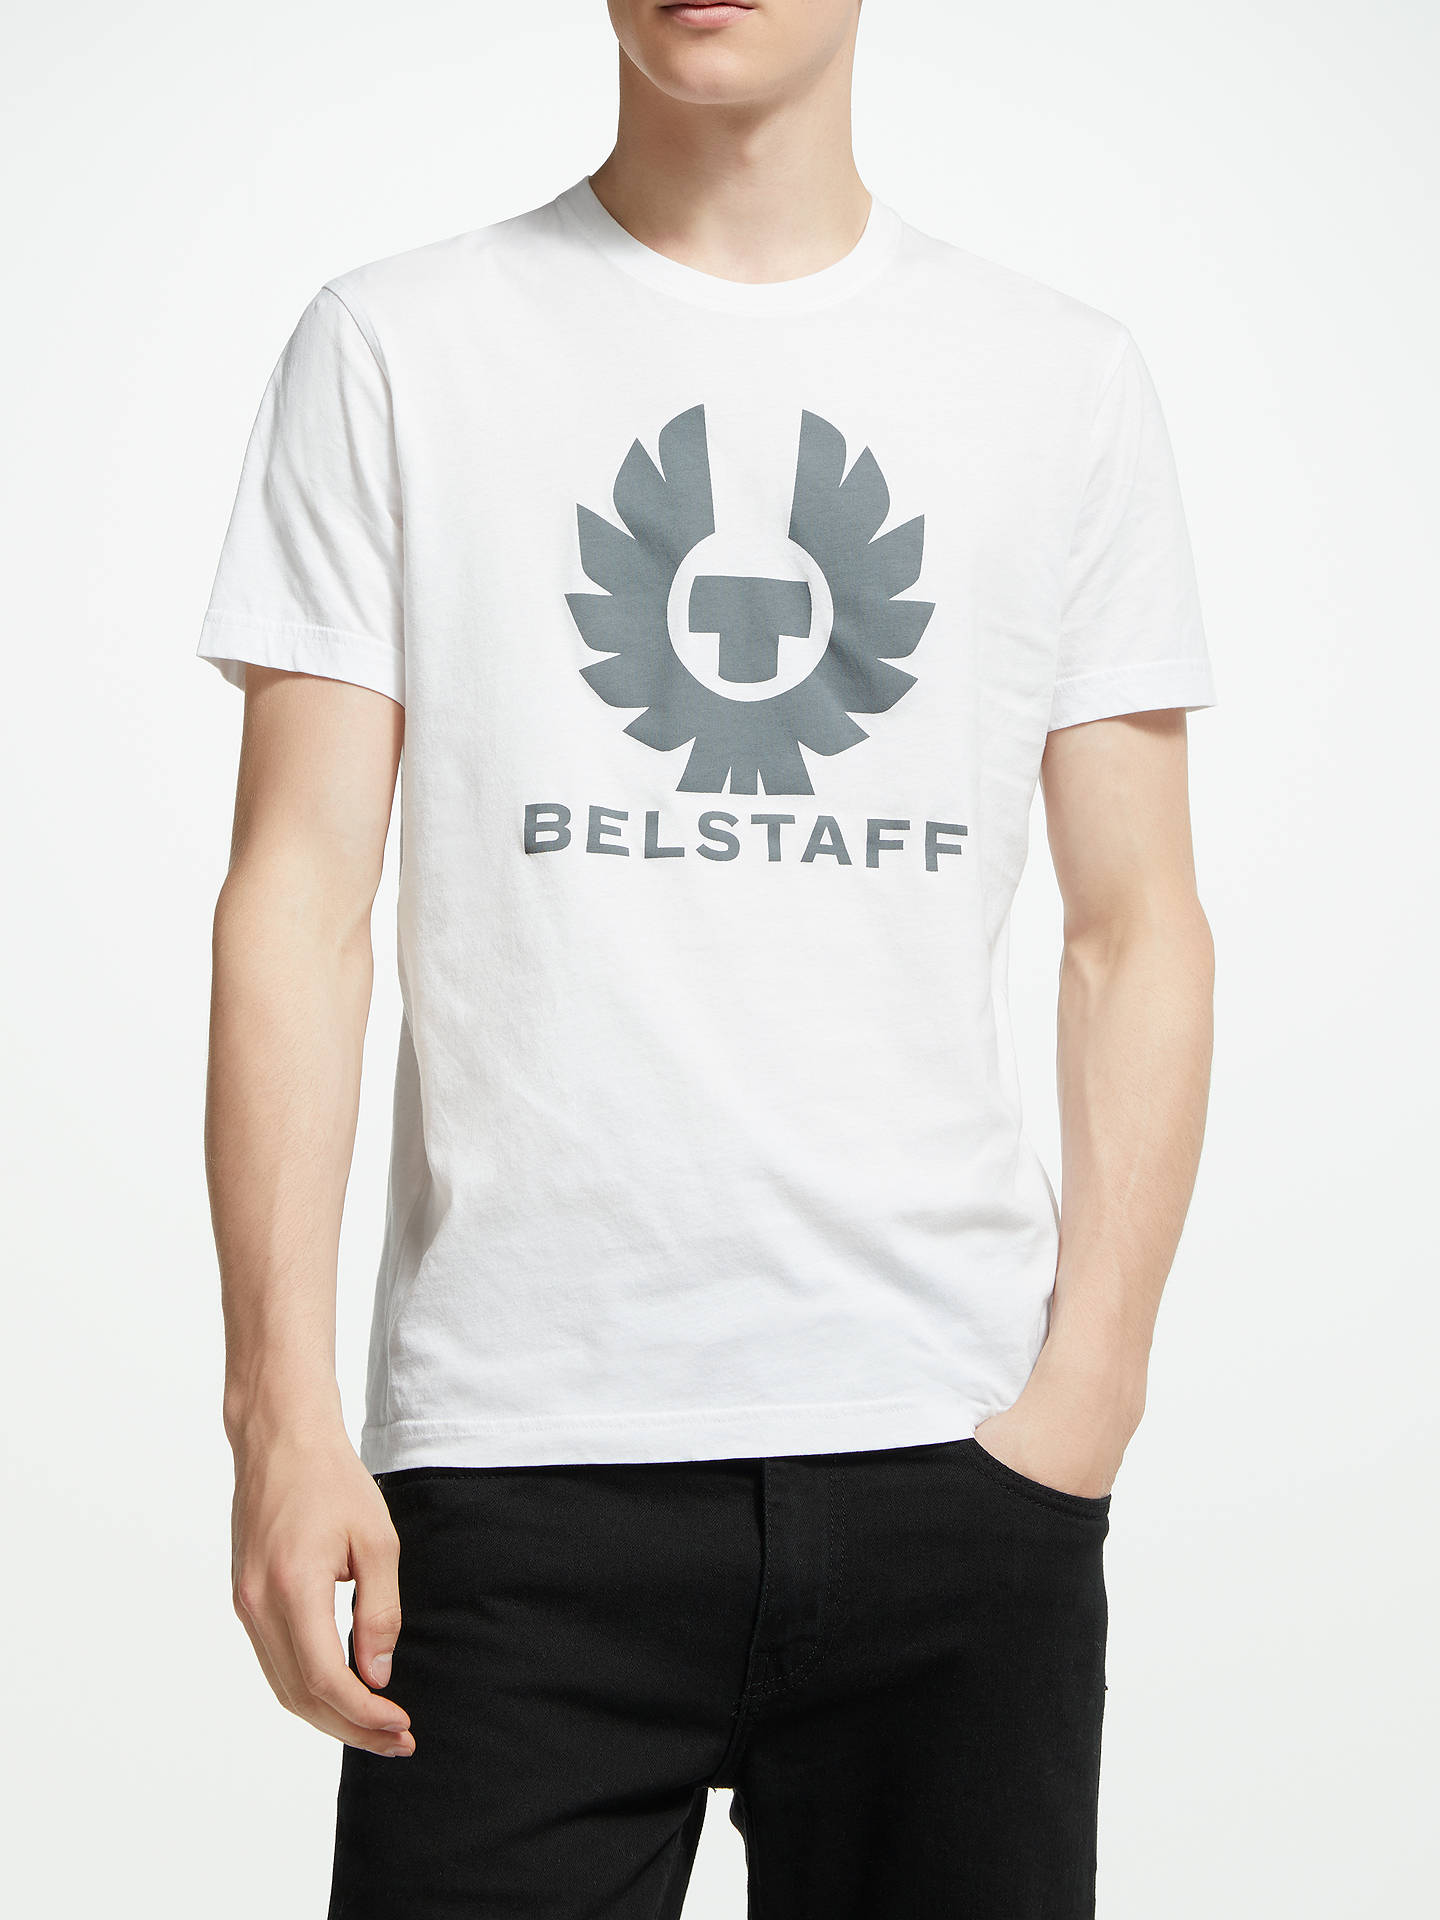 Buy Belstaff Cranstone Short Sleeve Graphic T-Shirt, White, M Online at johnlewis.com